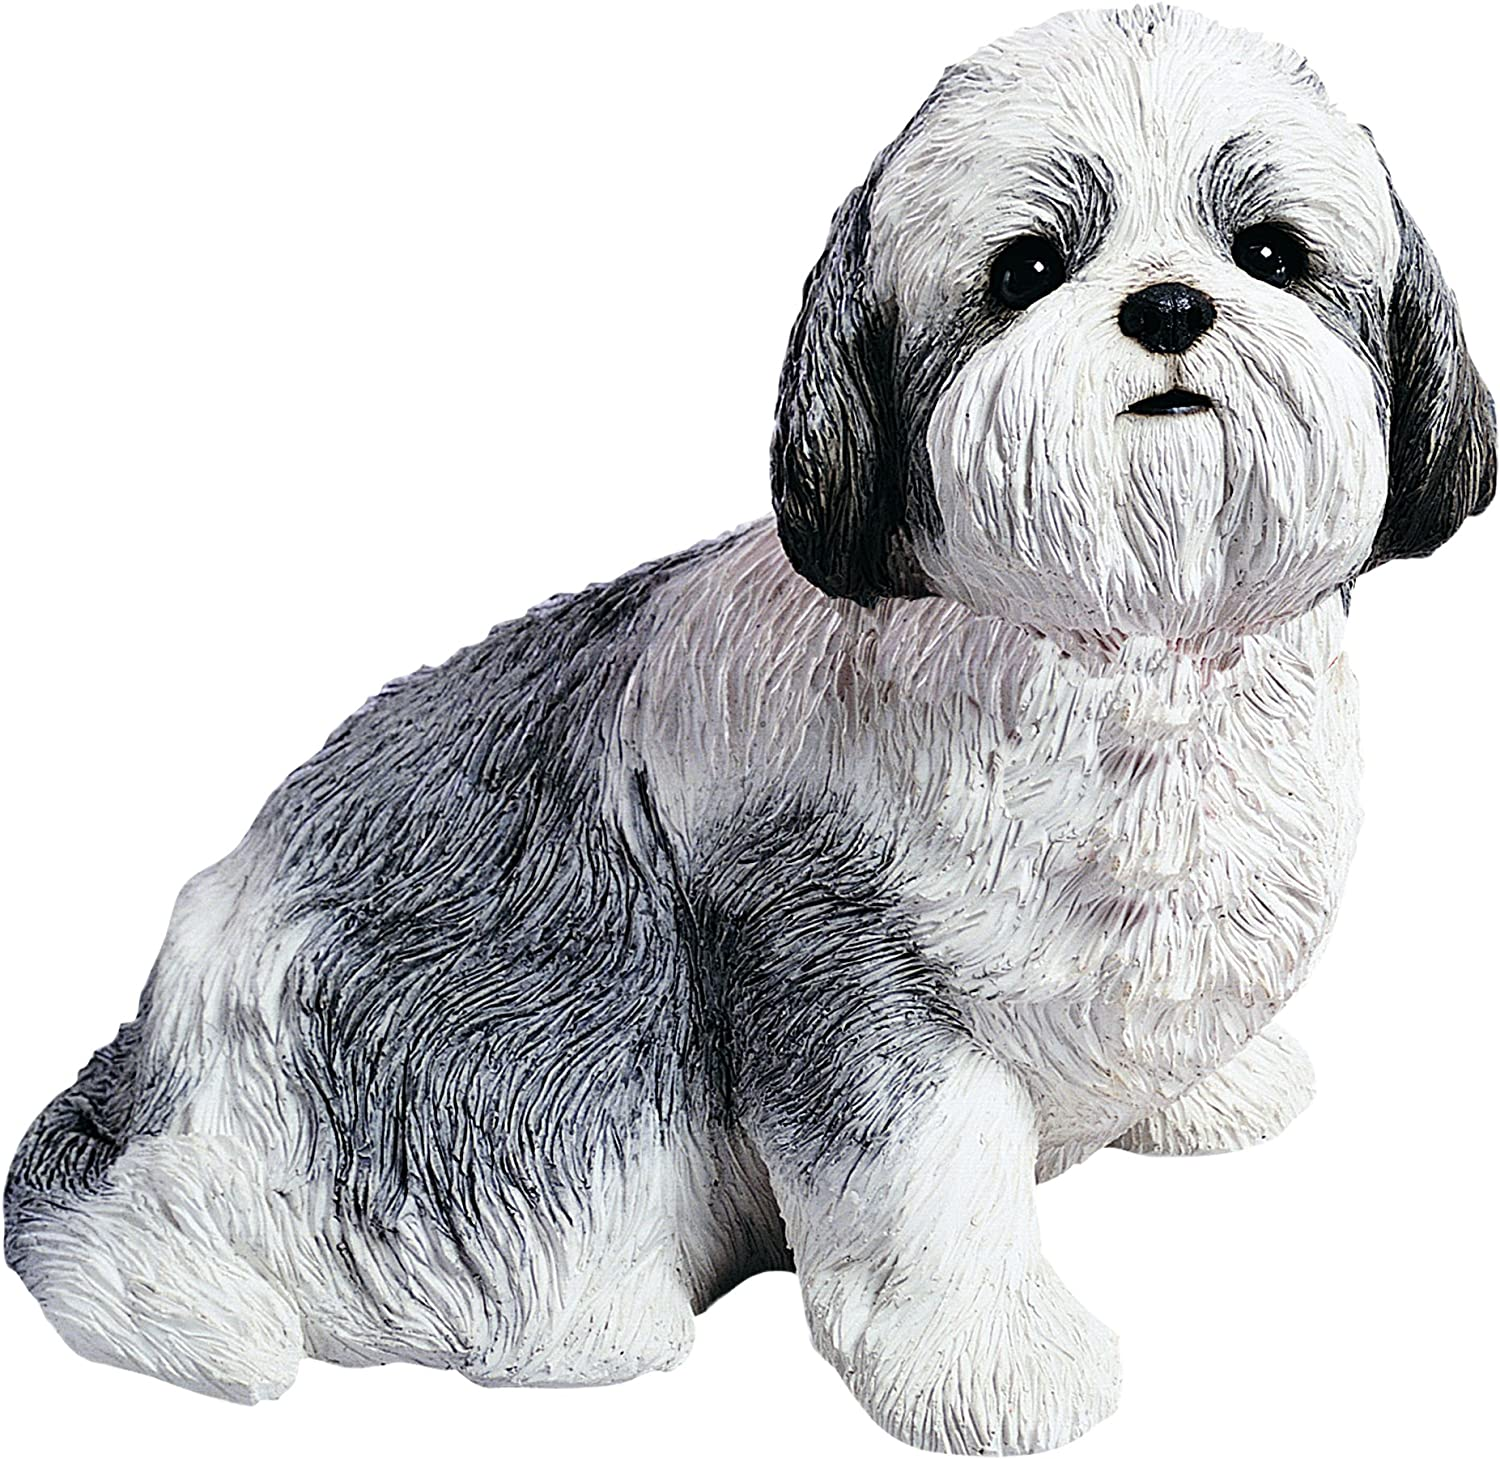 Sandicast Silver and White Shih Tzu Sculpture, Sitting, Life Size